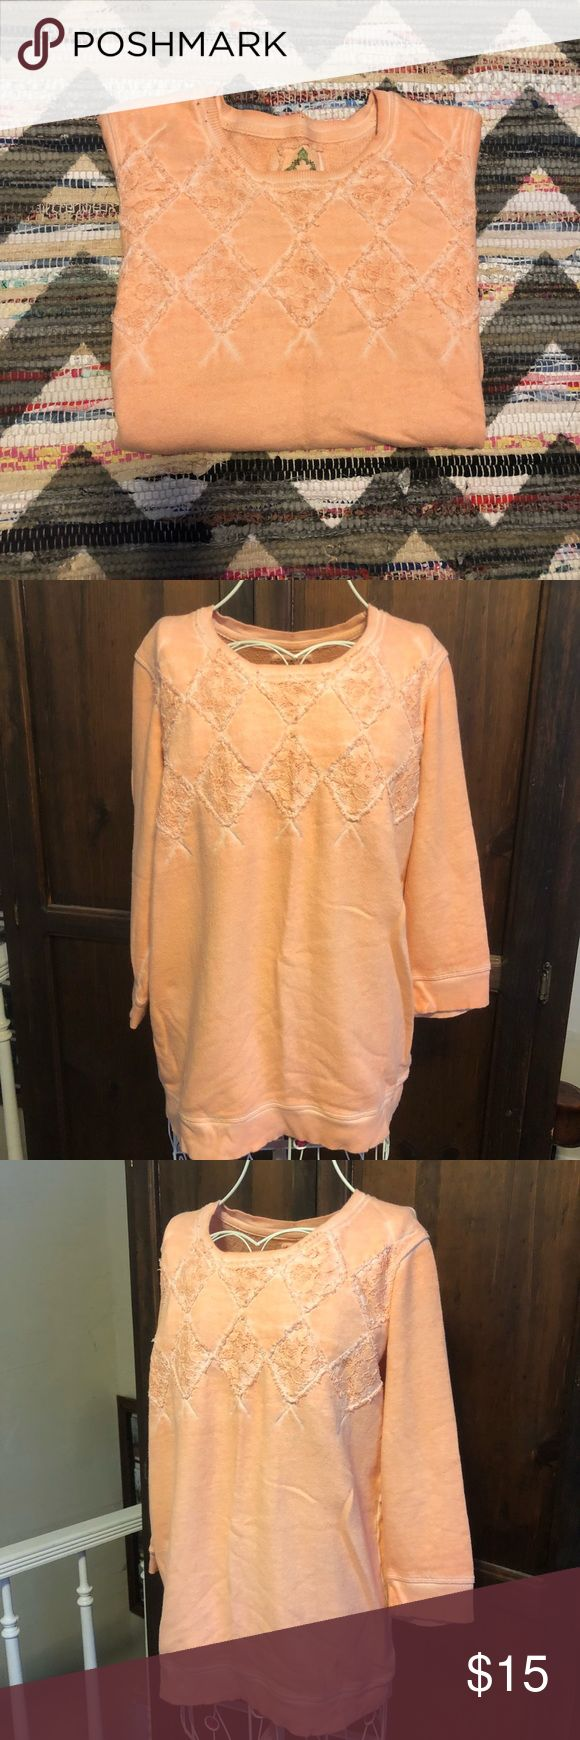 """Ruff Hewn Washed coral peach lace sweatshirt What a comfy cute lounge piece! Ruff Hewn Brand, size Medium, a made to look worn intentional distressing and fading around the seams. Washed light coral or peach color. Cute lace diamond cut outs on the chest, and super soft terry towel lining on the inside. About 21"""" across the chest laying flat, and about 26"""" long from shoulder to hem. A couple minor flaws to note: two very small dark dots by the neckline, and a small stain less than dime size…"""